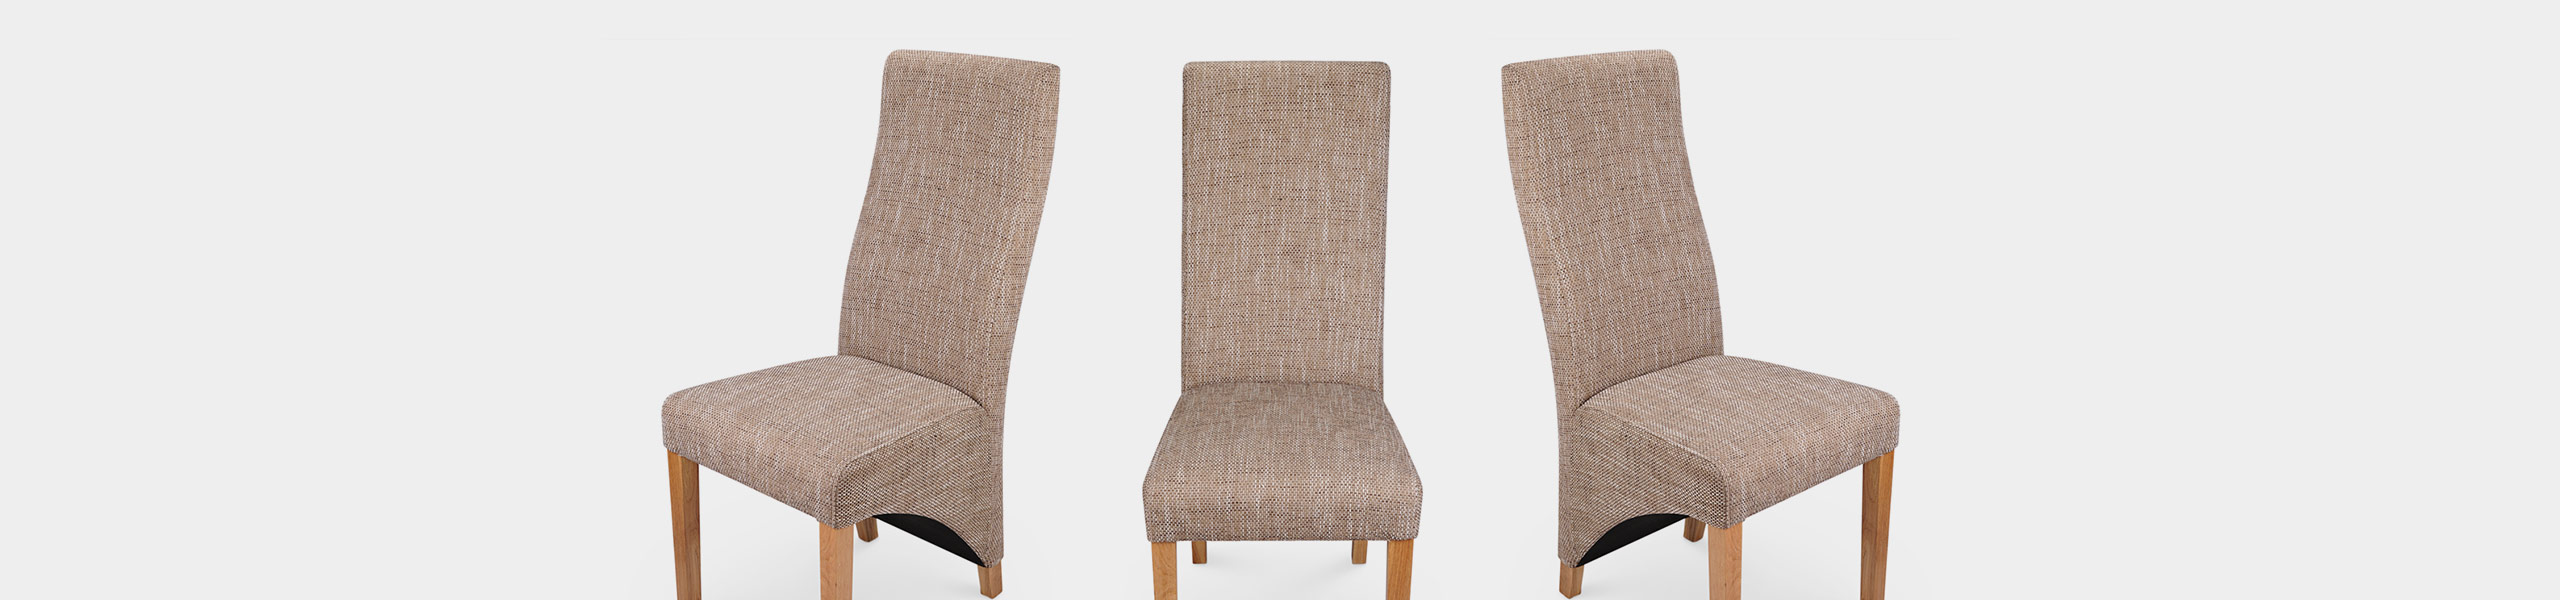 Baxter Dining Chair Tweed Video Banner